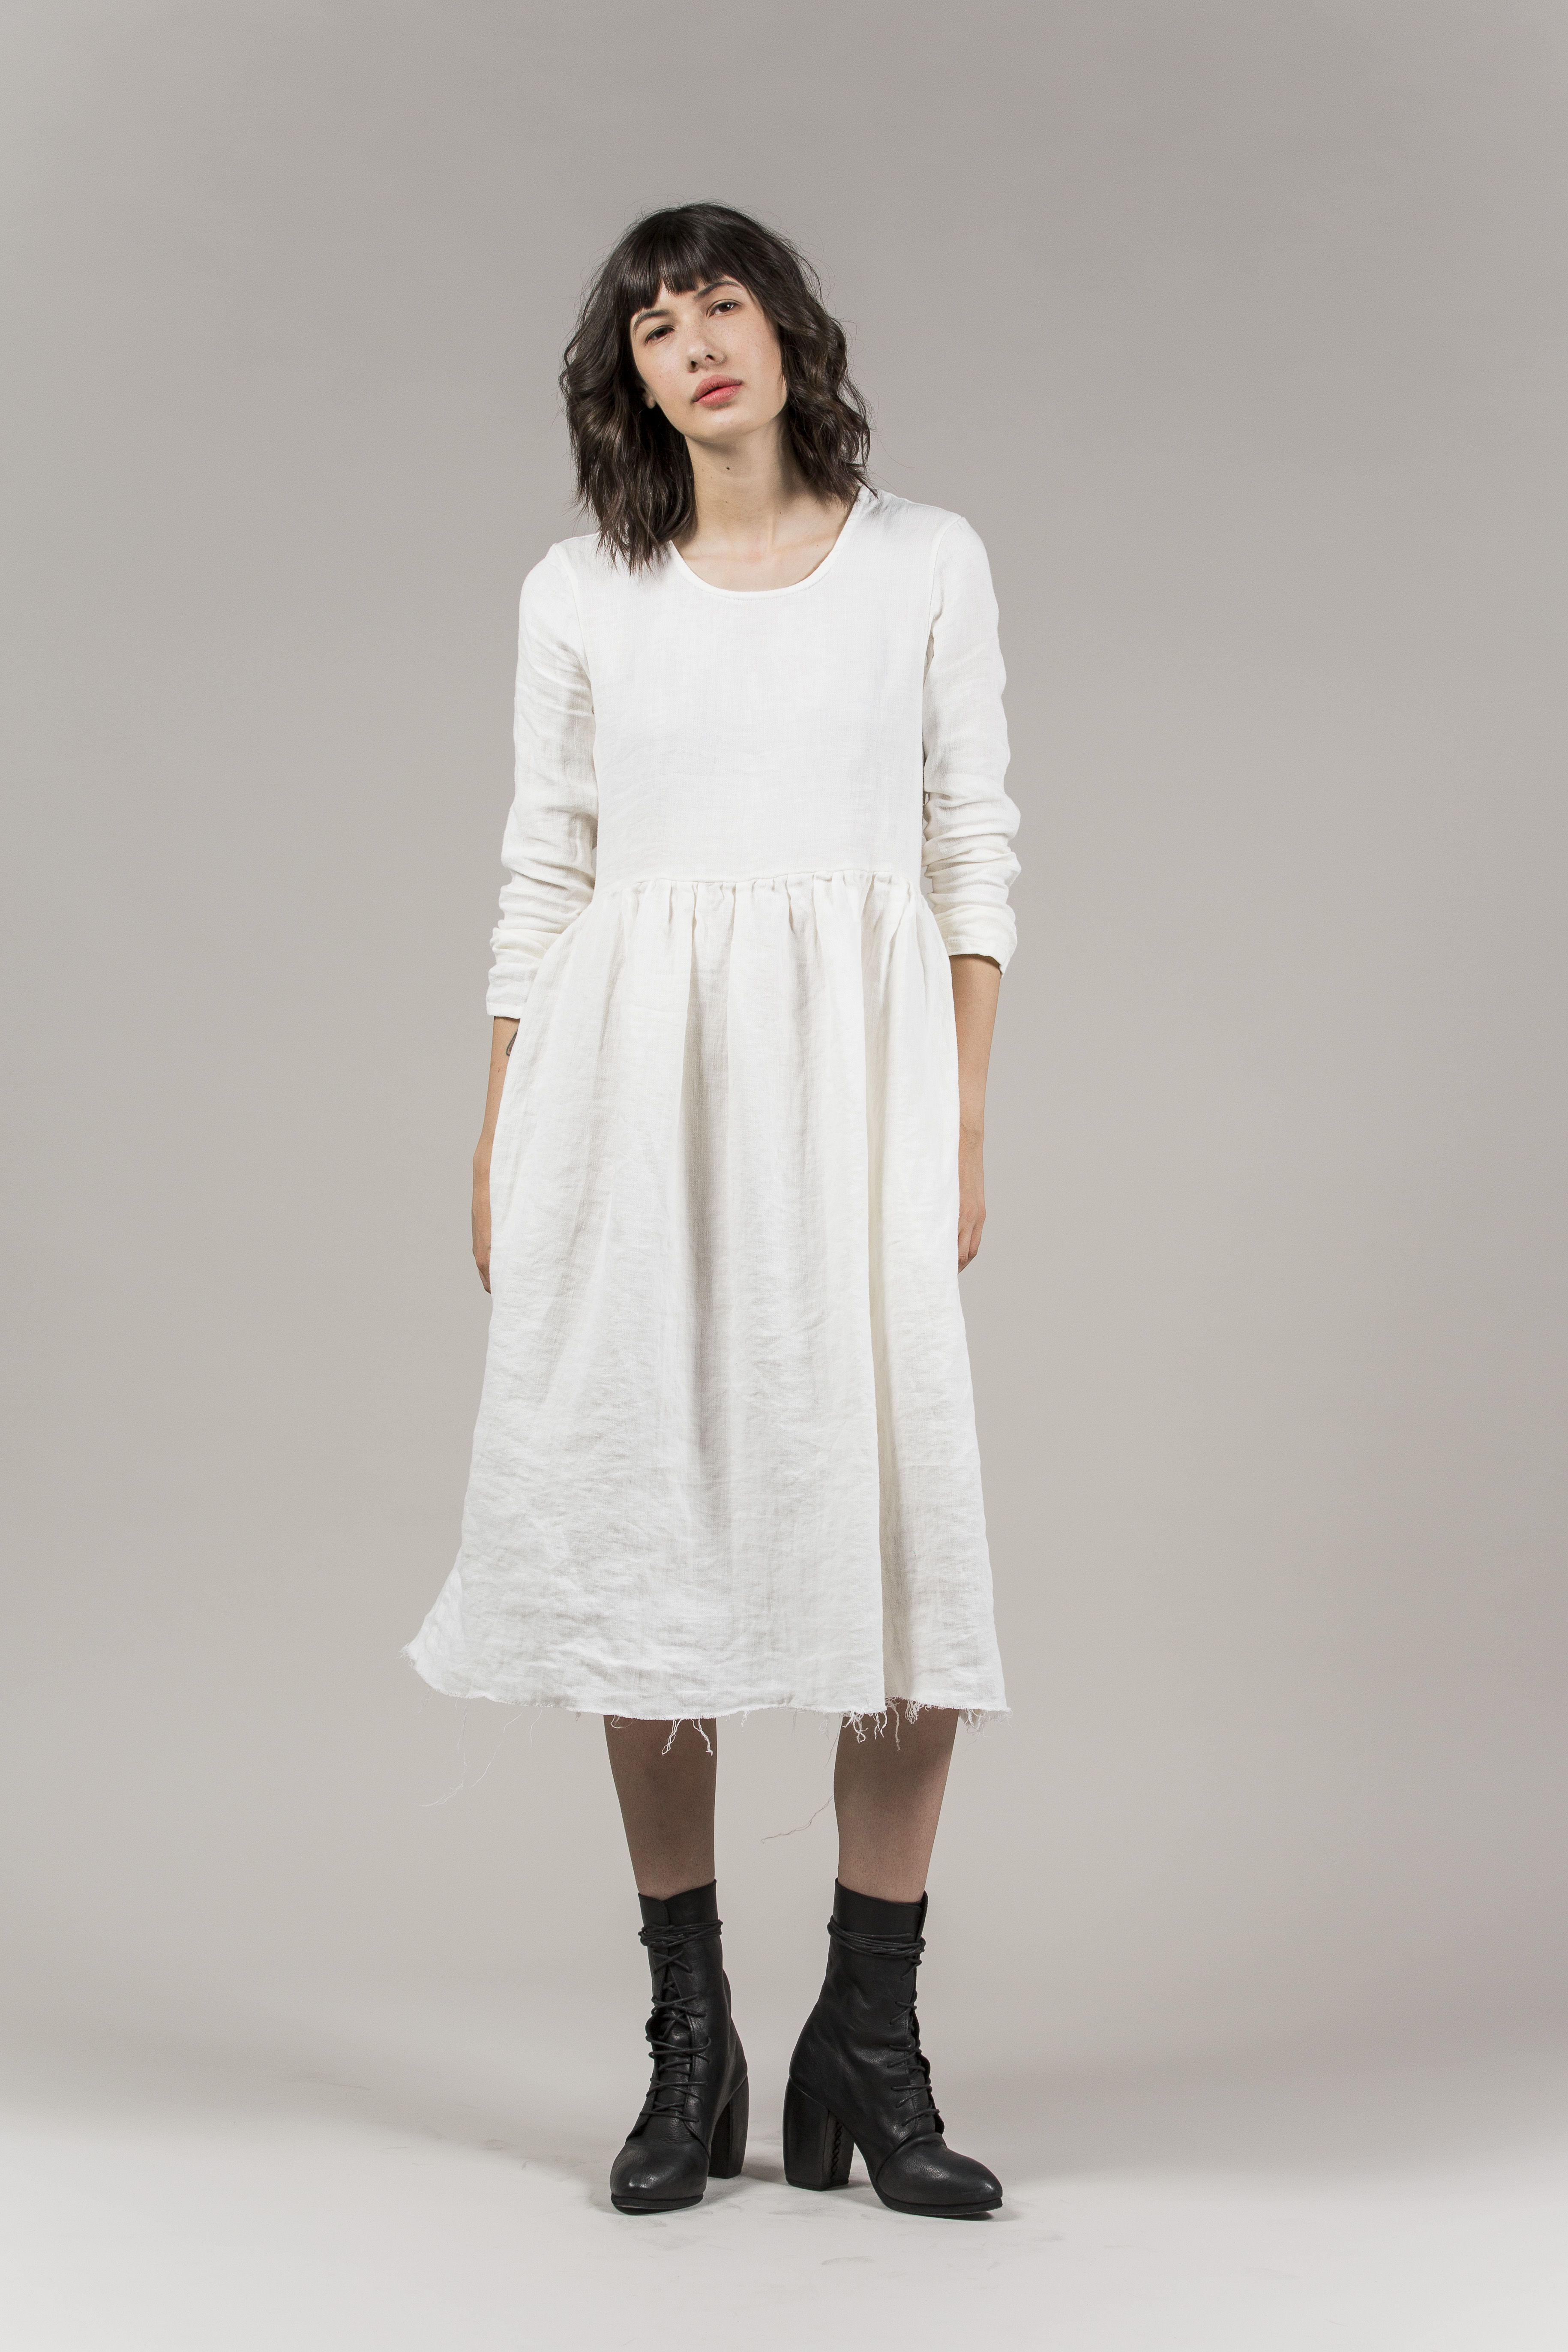 AGNES DRESS – Sisters Of The Black Moon